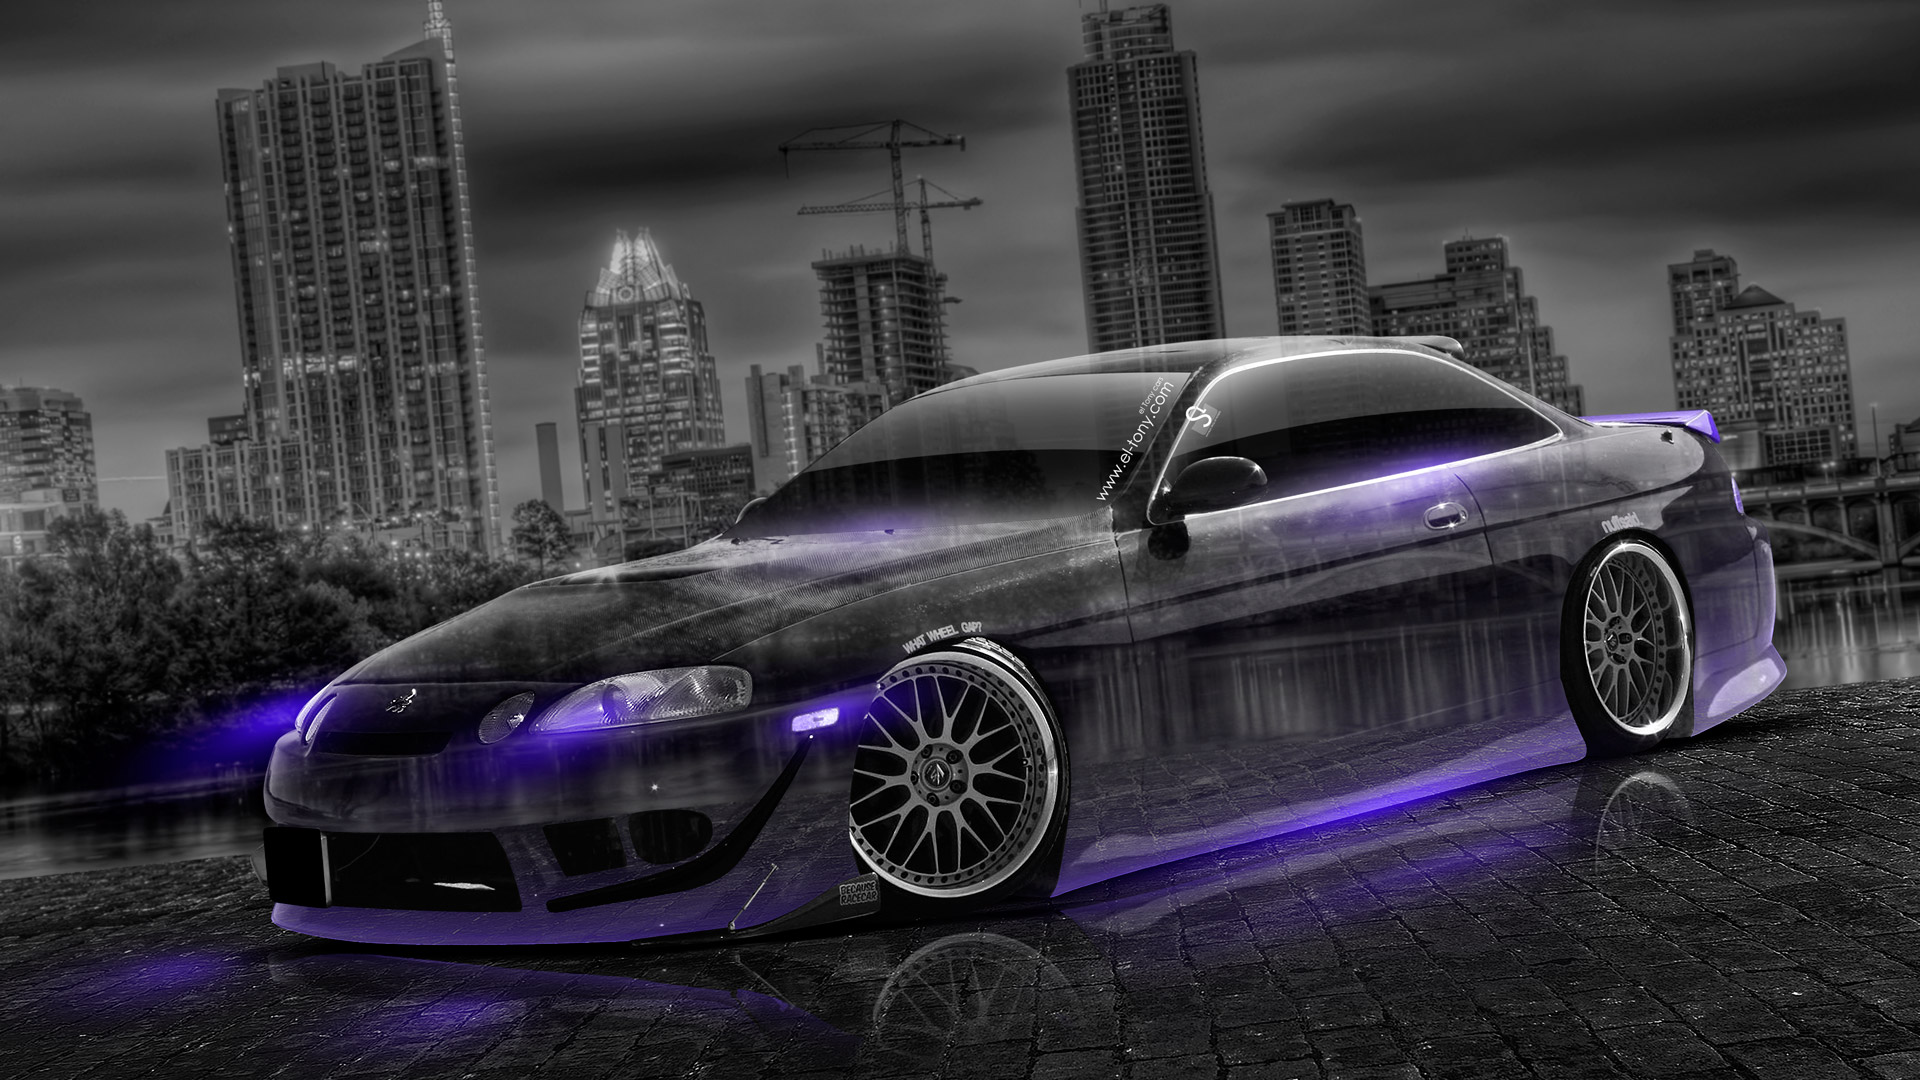 Charmant Toyota Soarer JDM Tuning Crystal City Car 2014 .